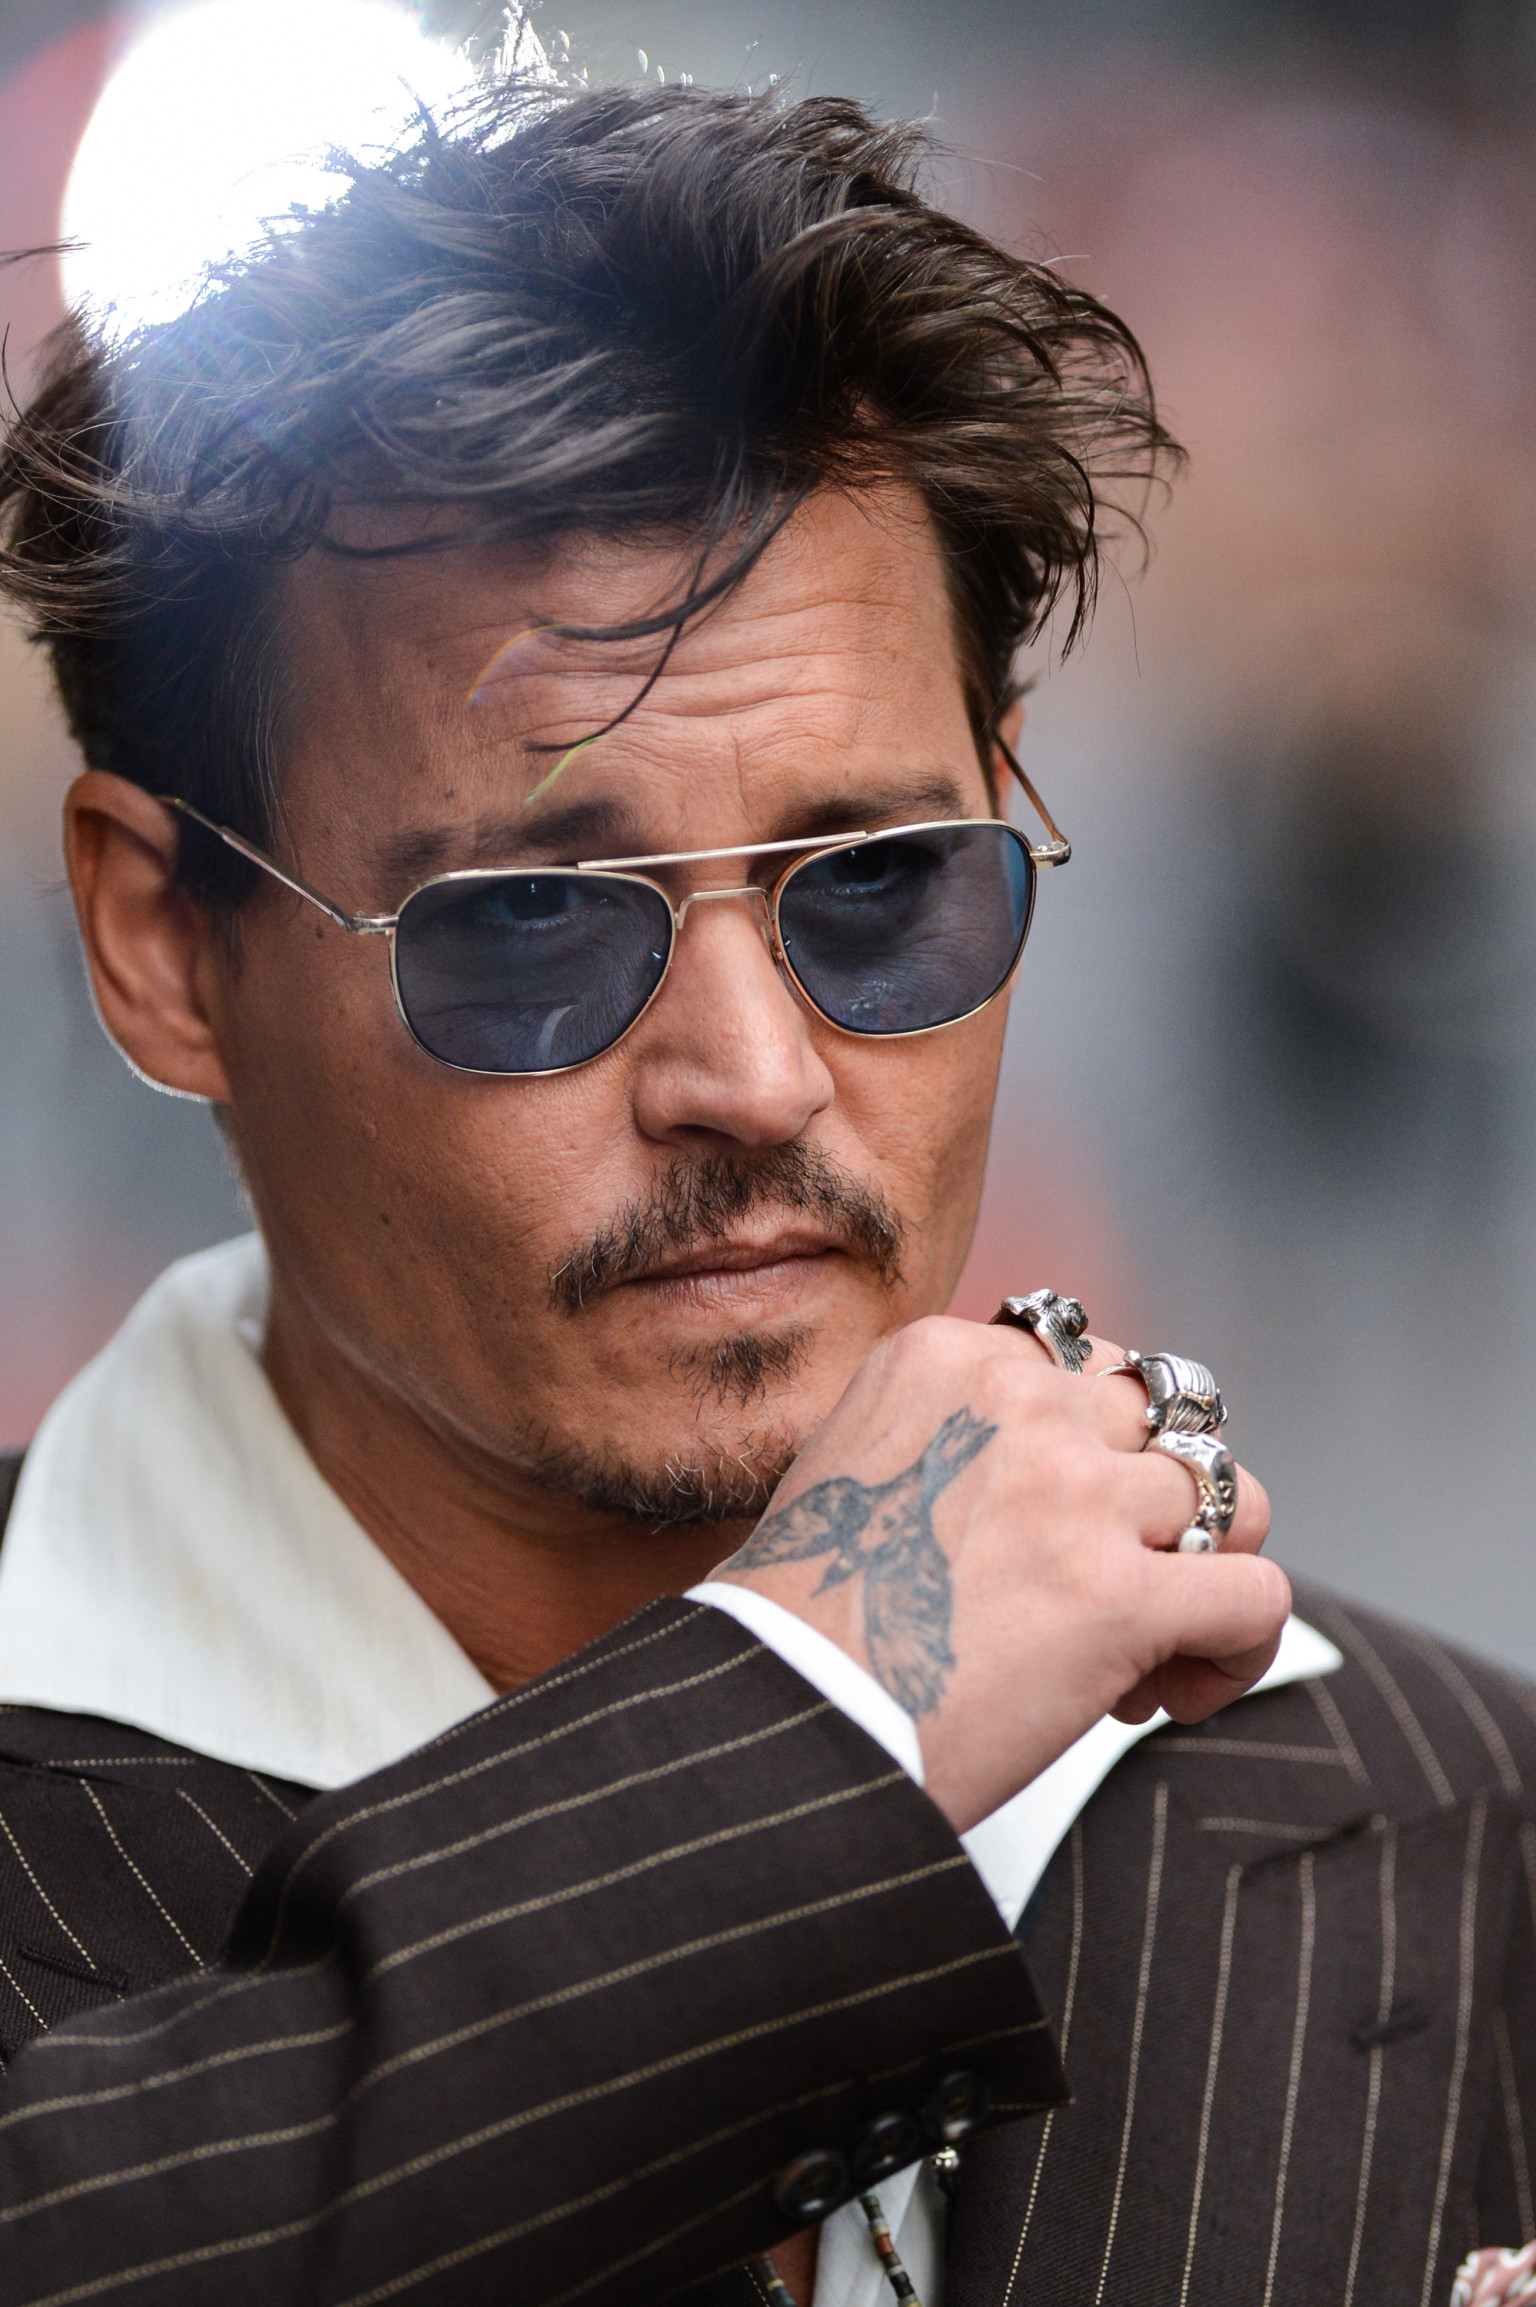 Johnny Depp Set For 'Alice In Wonderland 2' As Mad Hatter ...